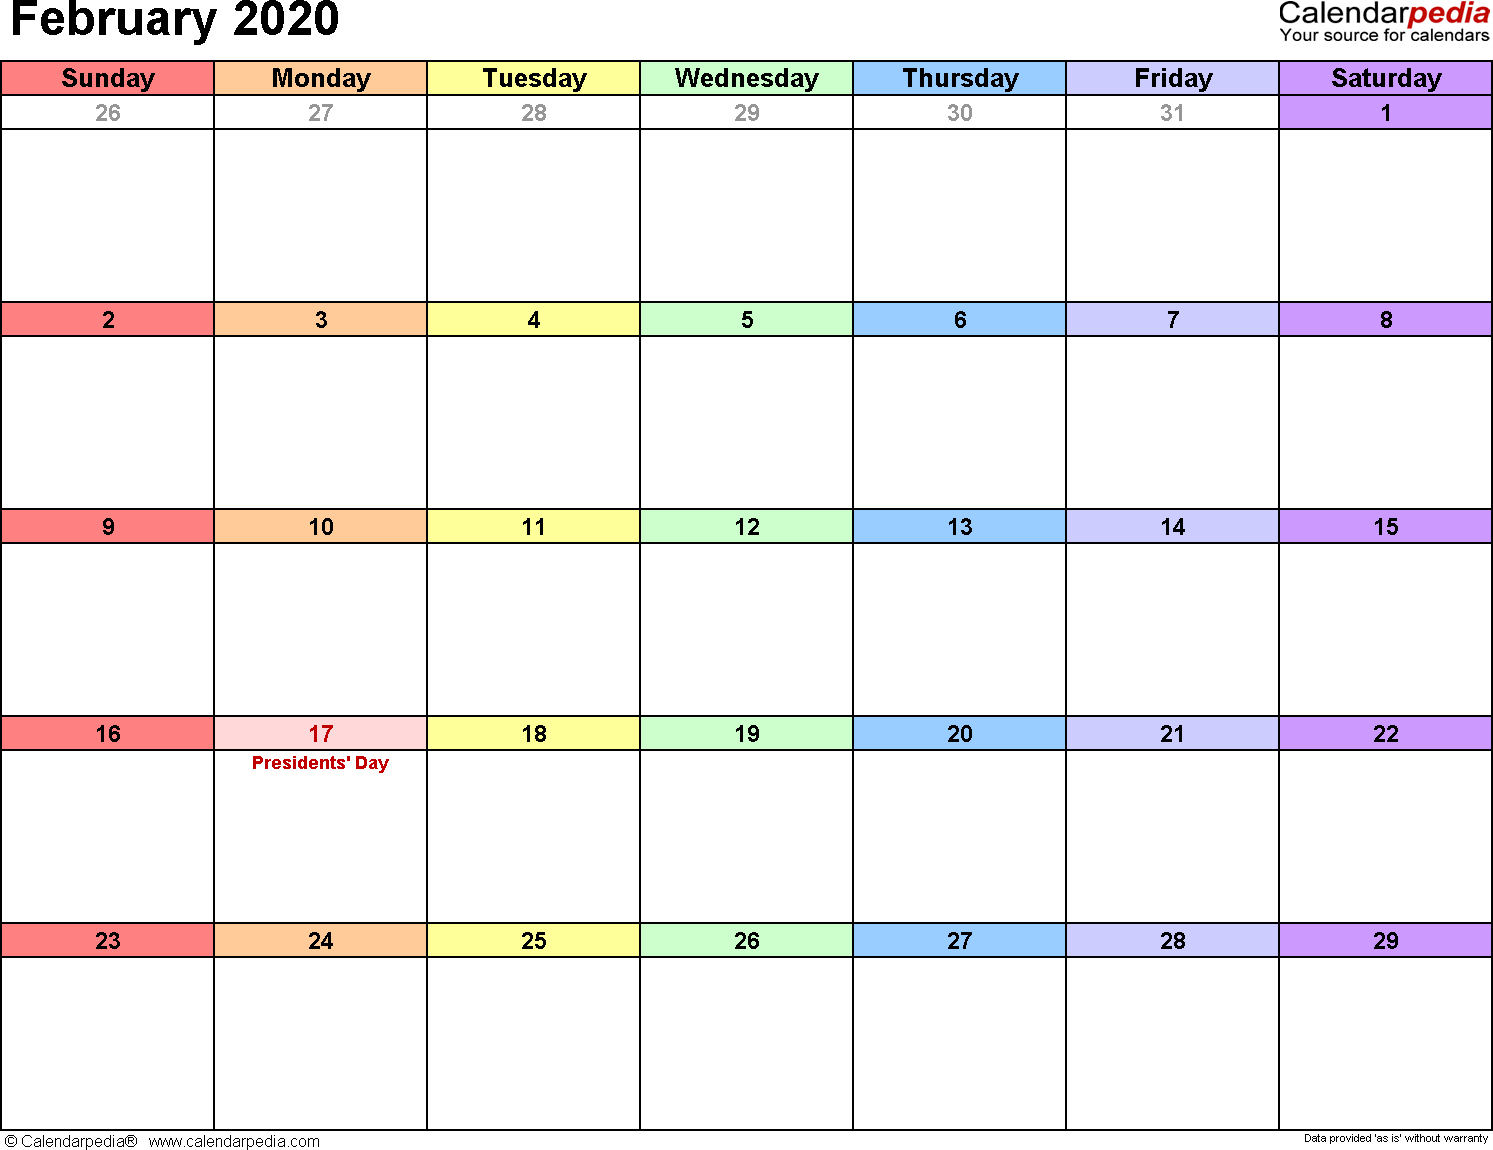 Feb Calendar 2020 February 2020 Calendars for Word, Excel & PDF